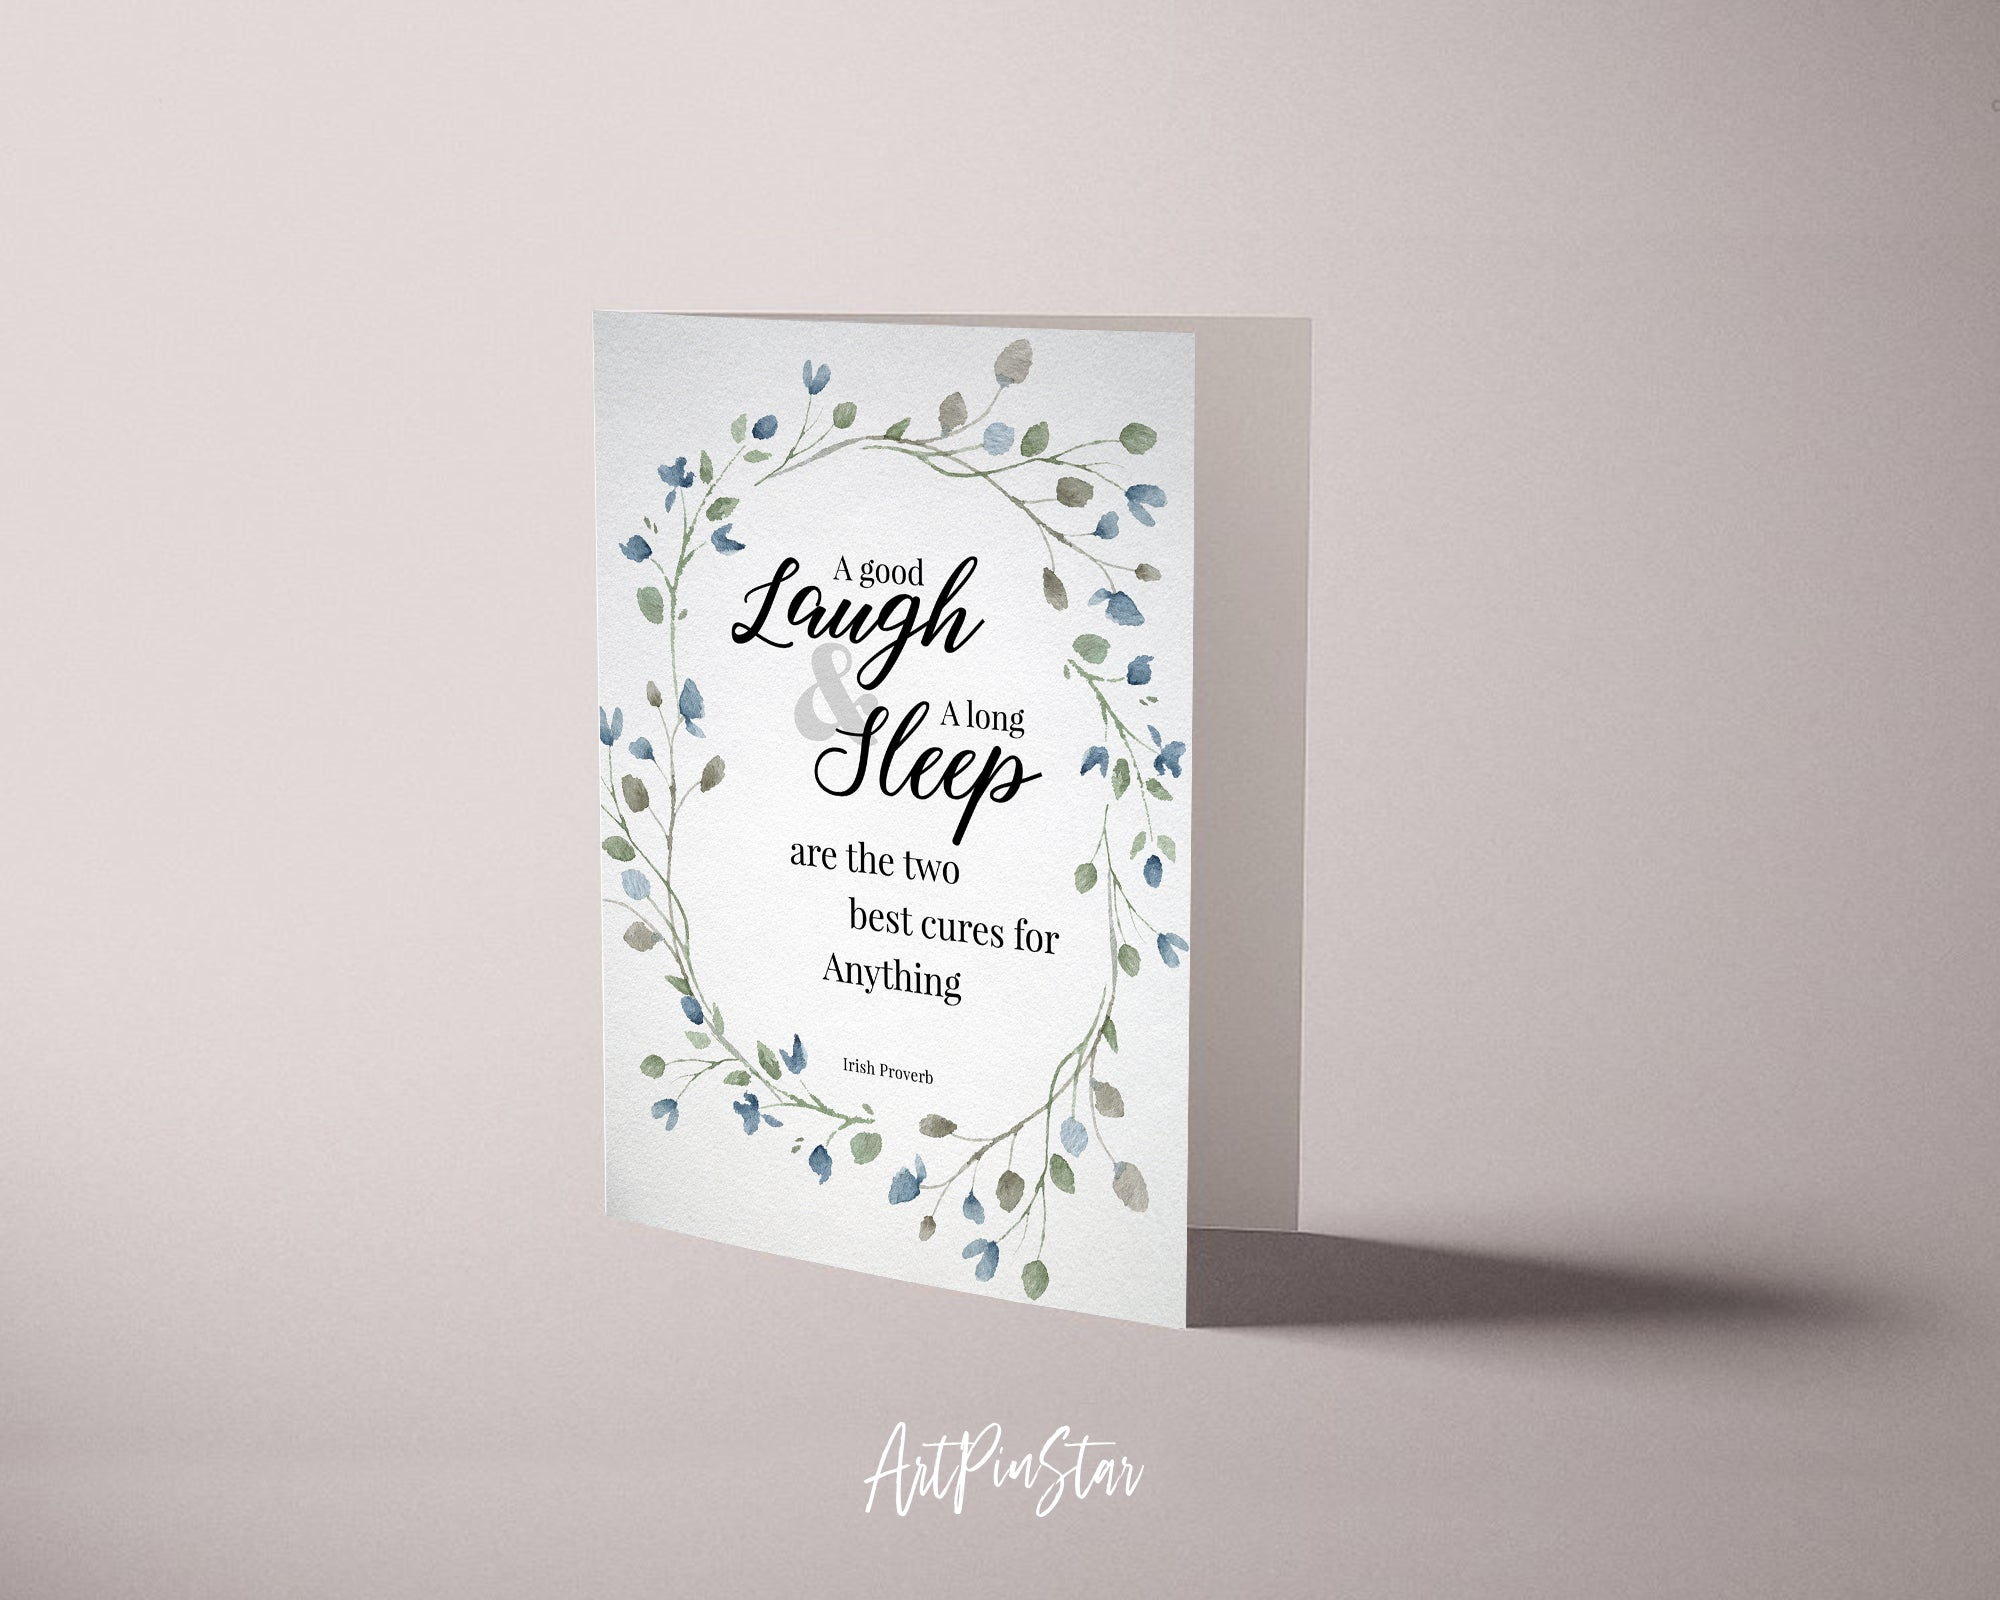 A good laugh & a long sleep are the two best cures Irish Proverb Customized Greeting Card